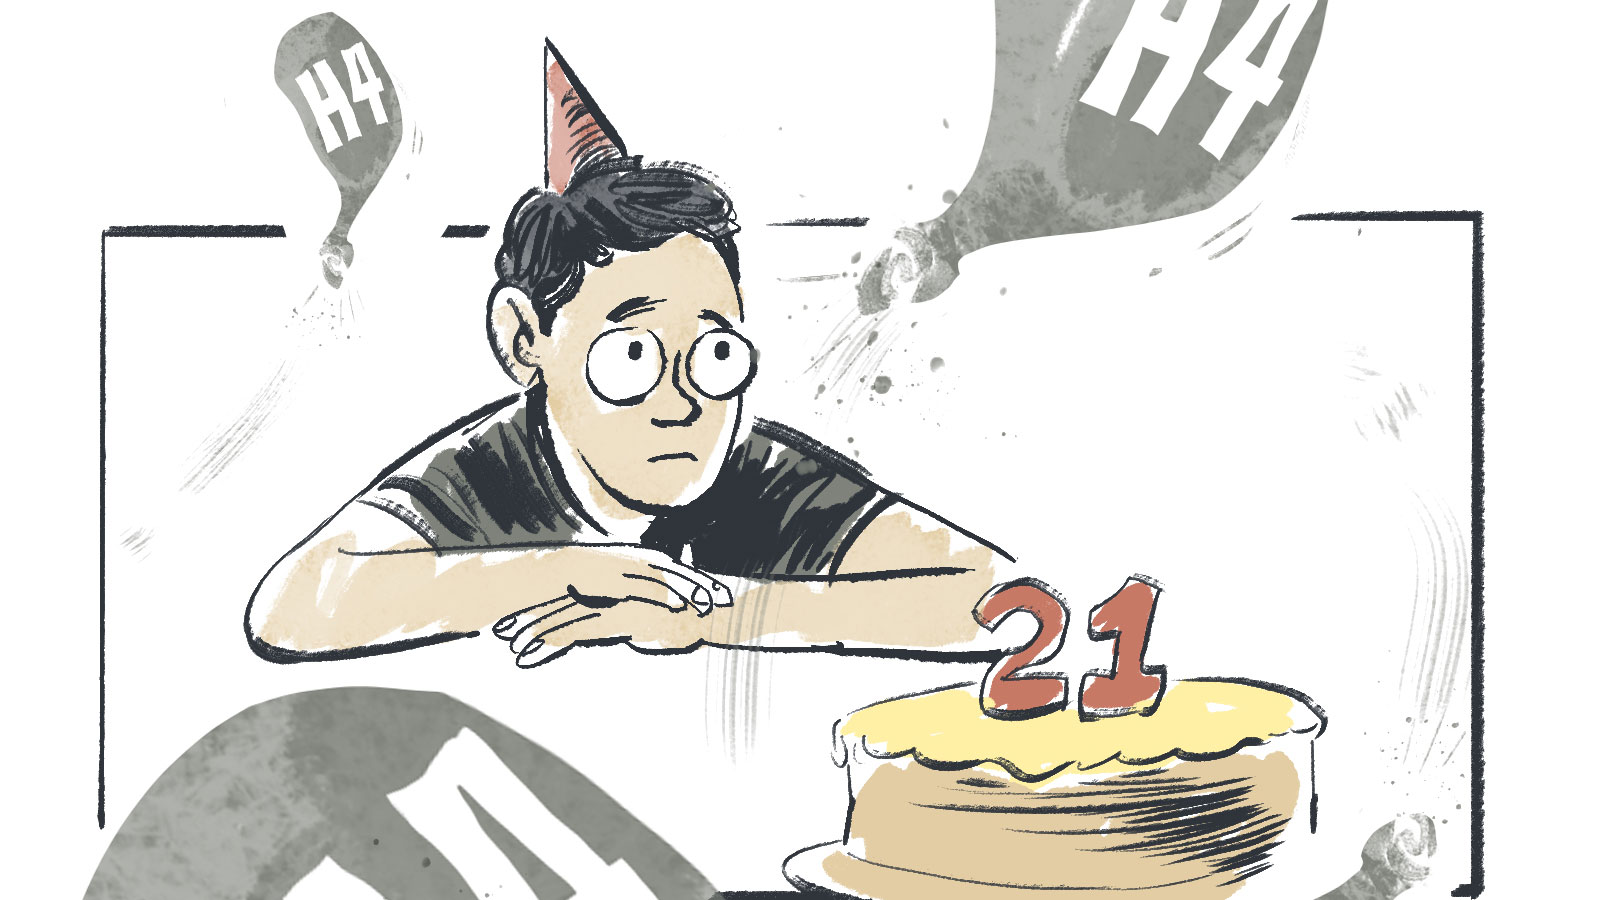 In this cartoon, a frowning boy in a pointed birthday hat sits in front of a cake with '21' written on it.